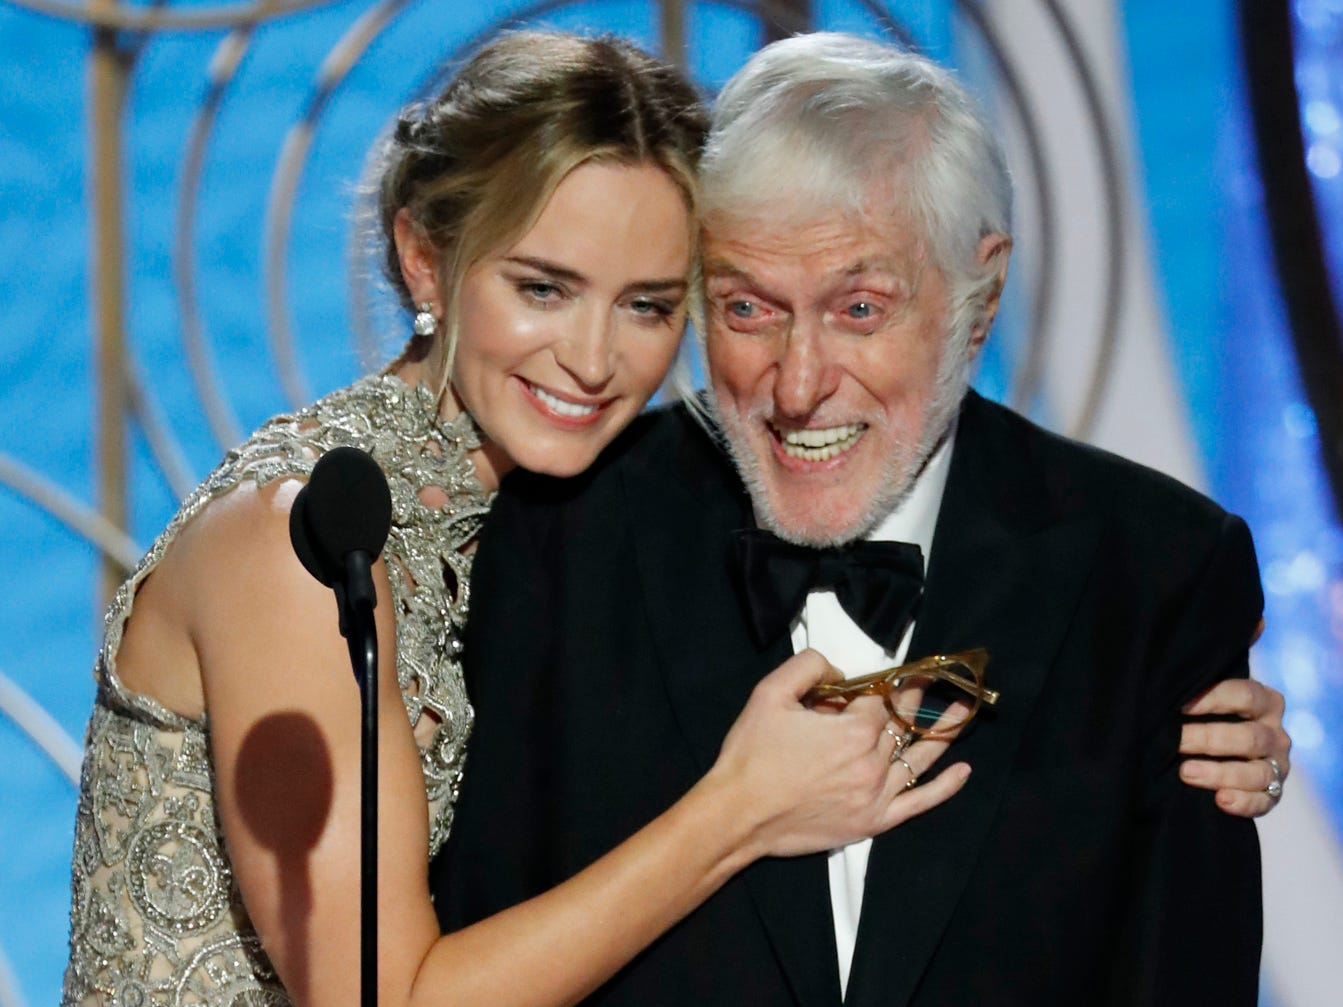 Emily Blunt hugs Dick Van Dyke during the 76th Golden Globe Awards.